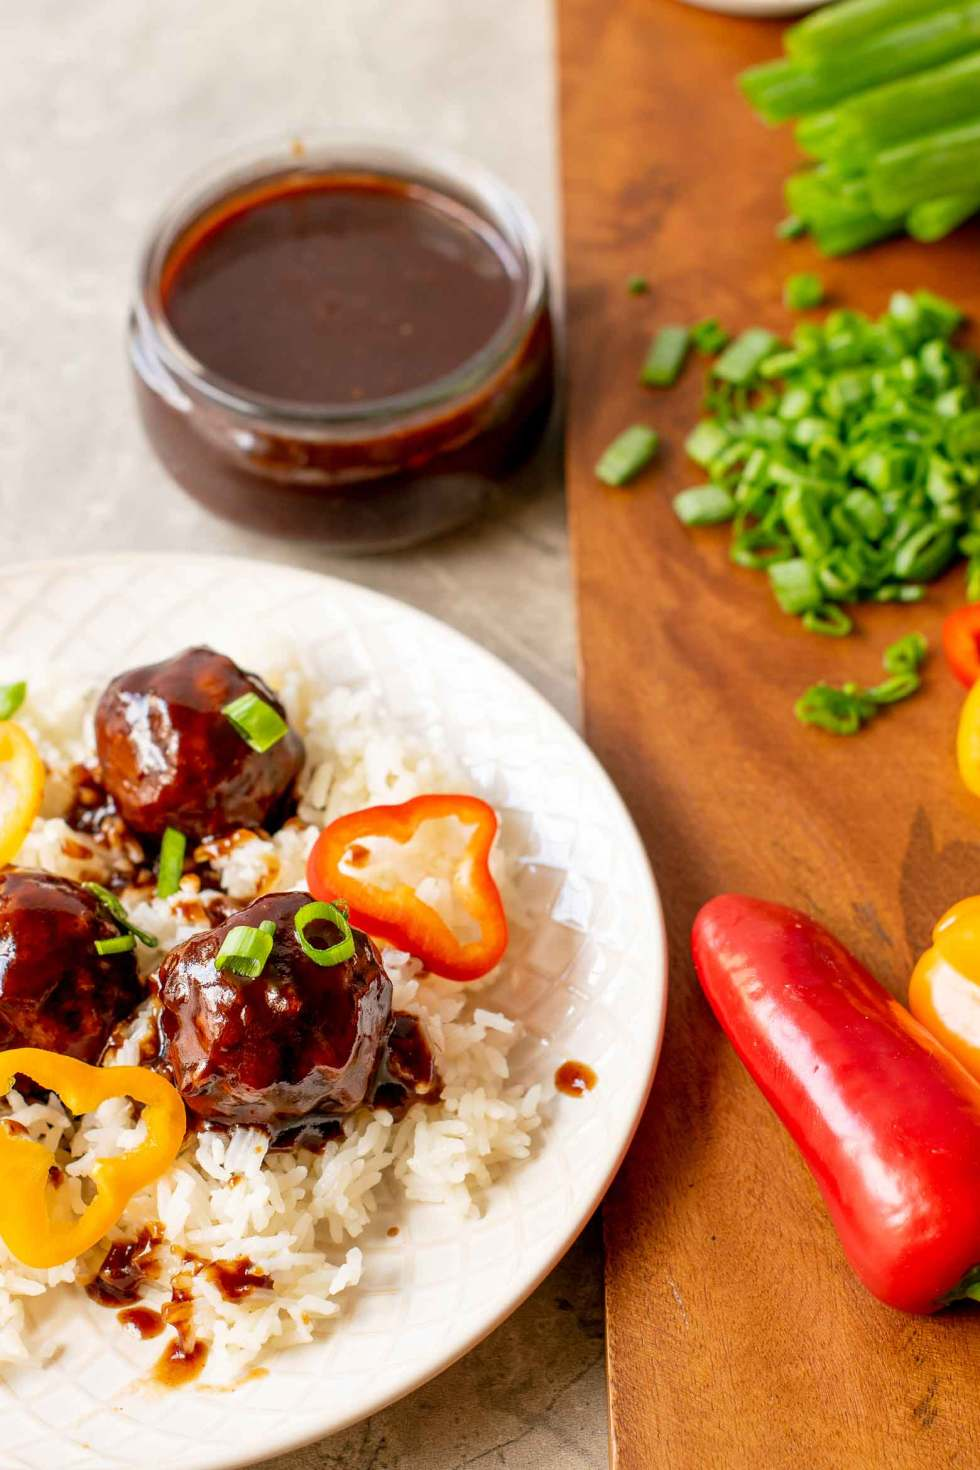 peppers and green onions on rice and spicy meatballs